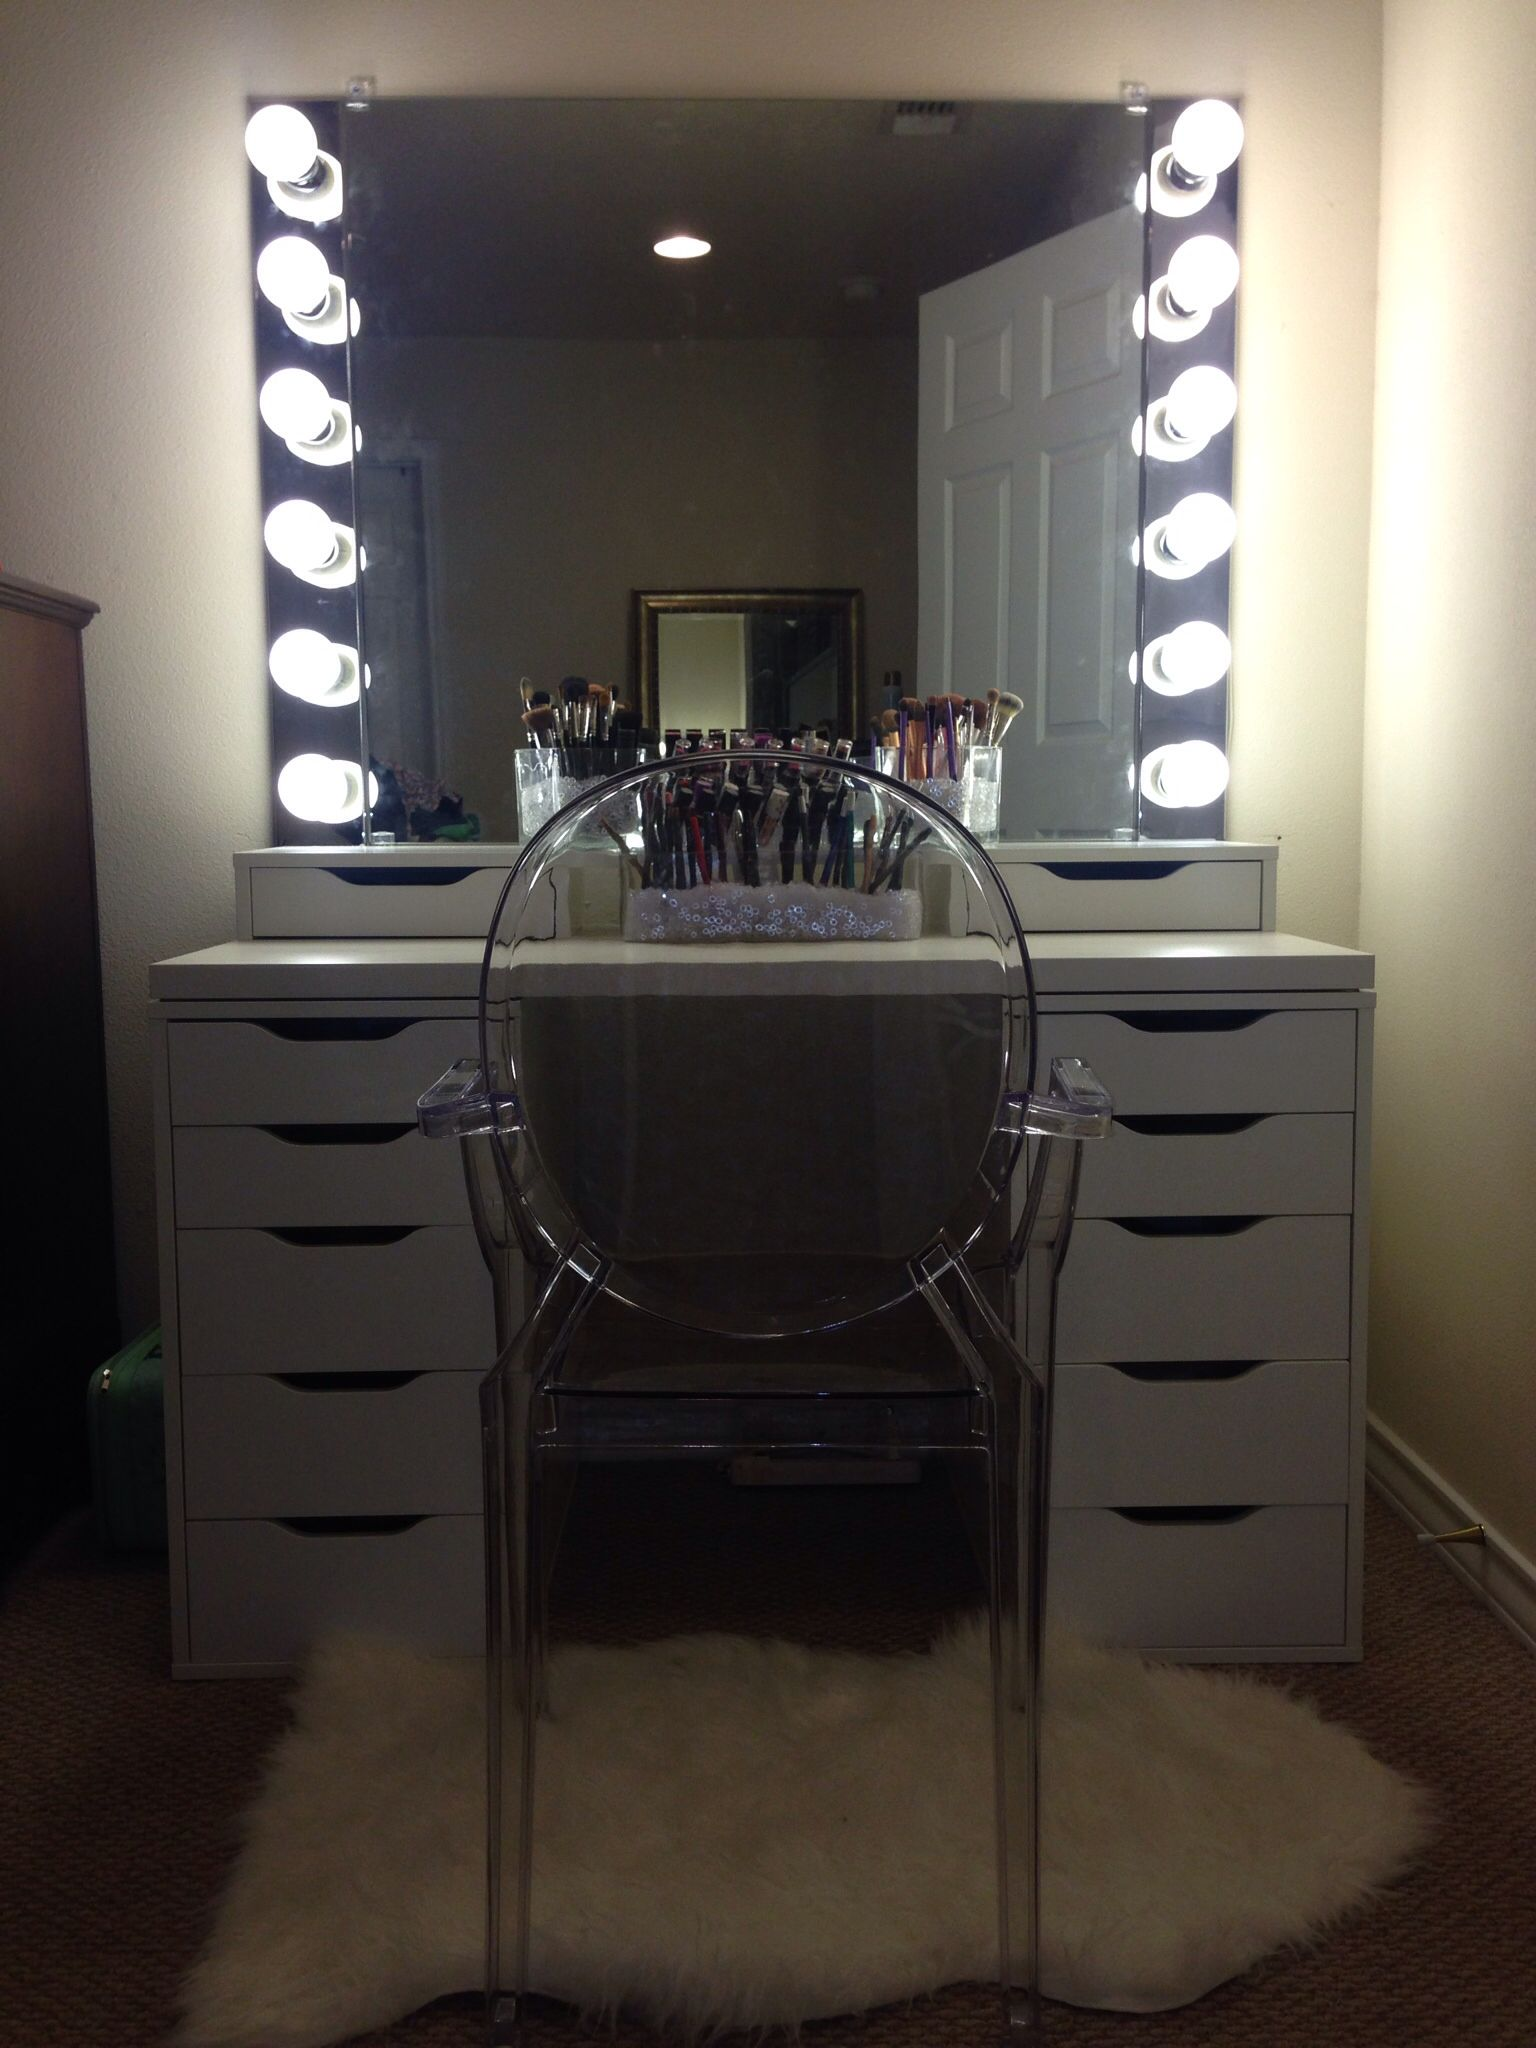 Diy vanity mirror with lights for bathroom and makeup for Cute makeup vanity